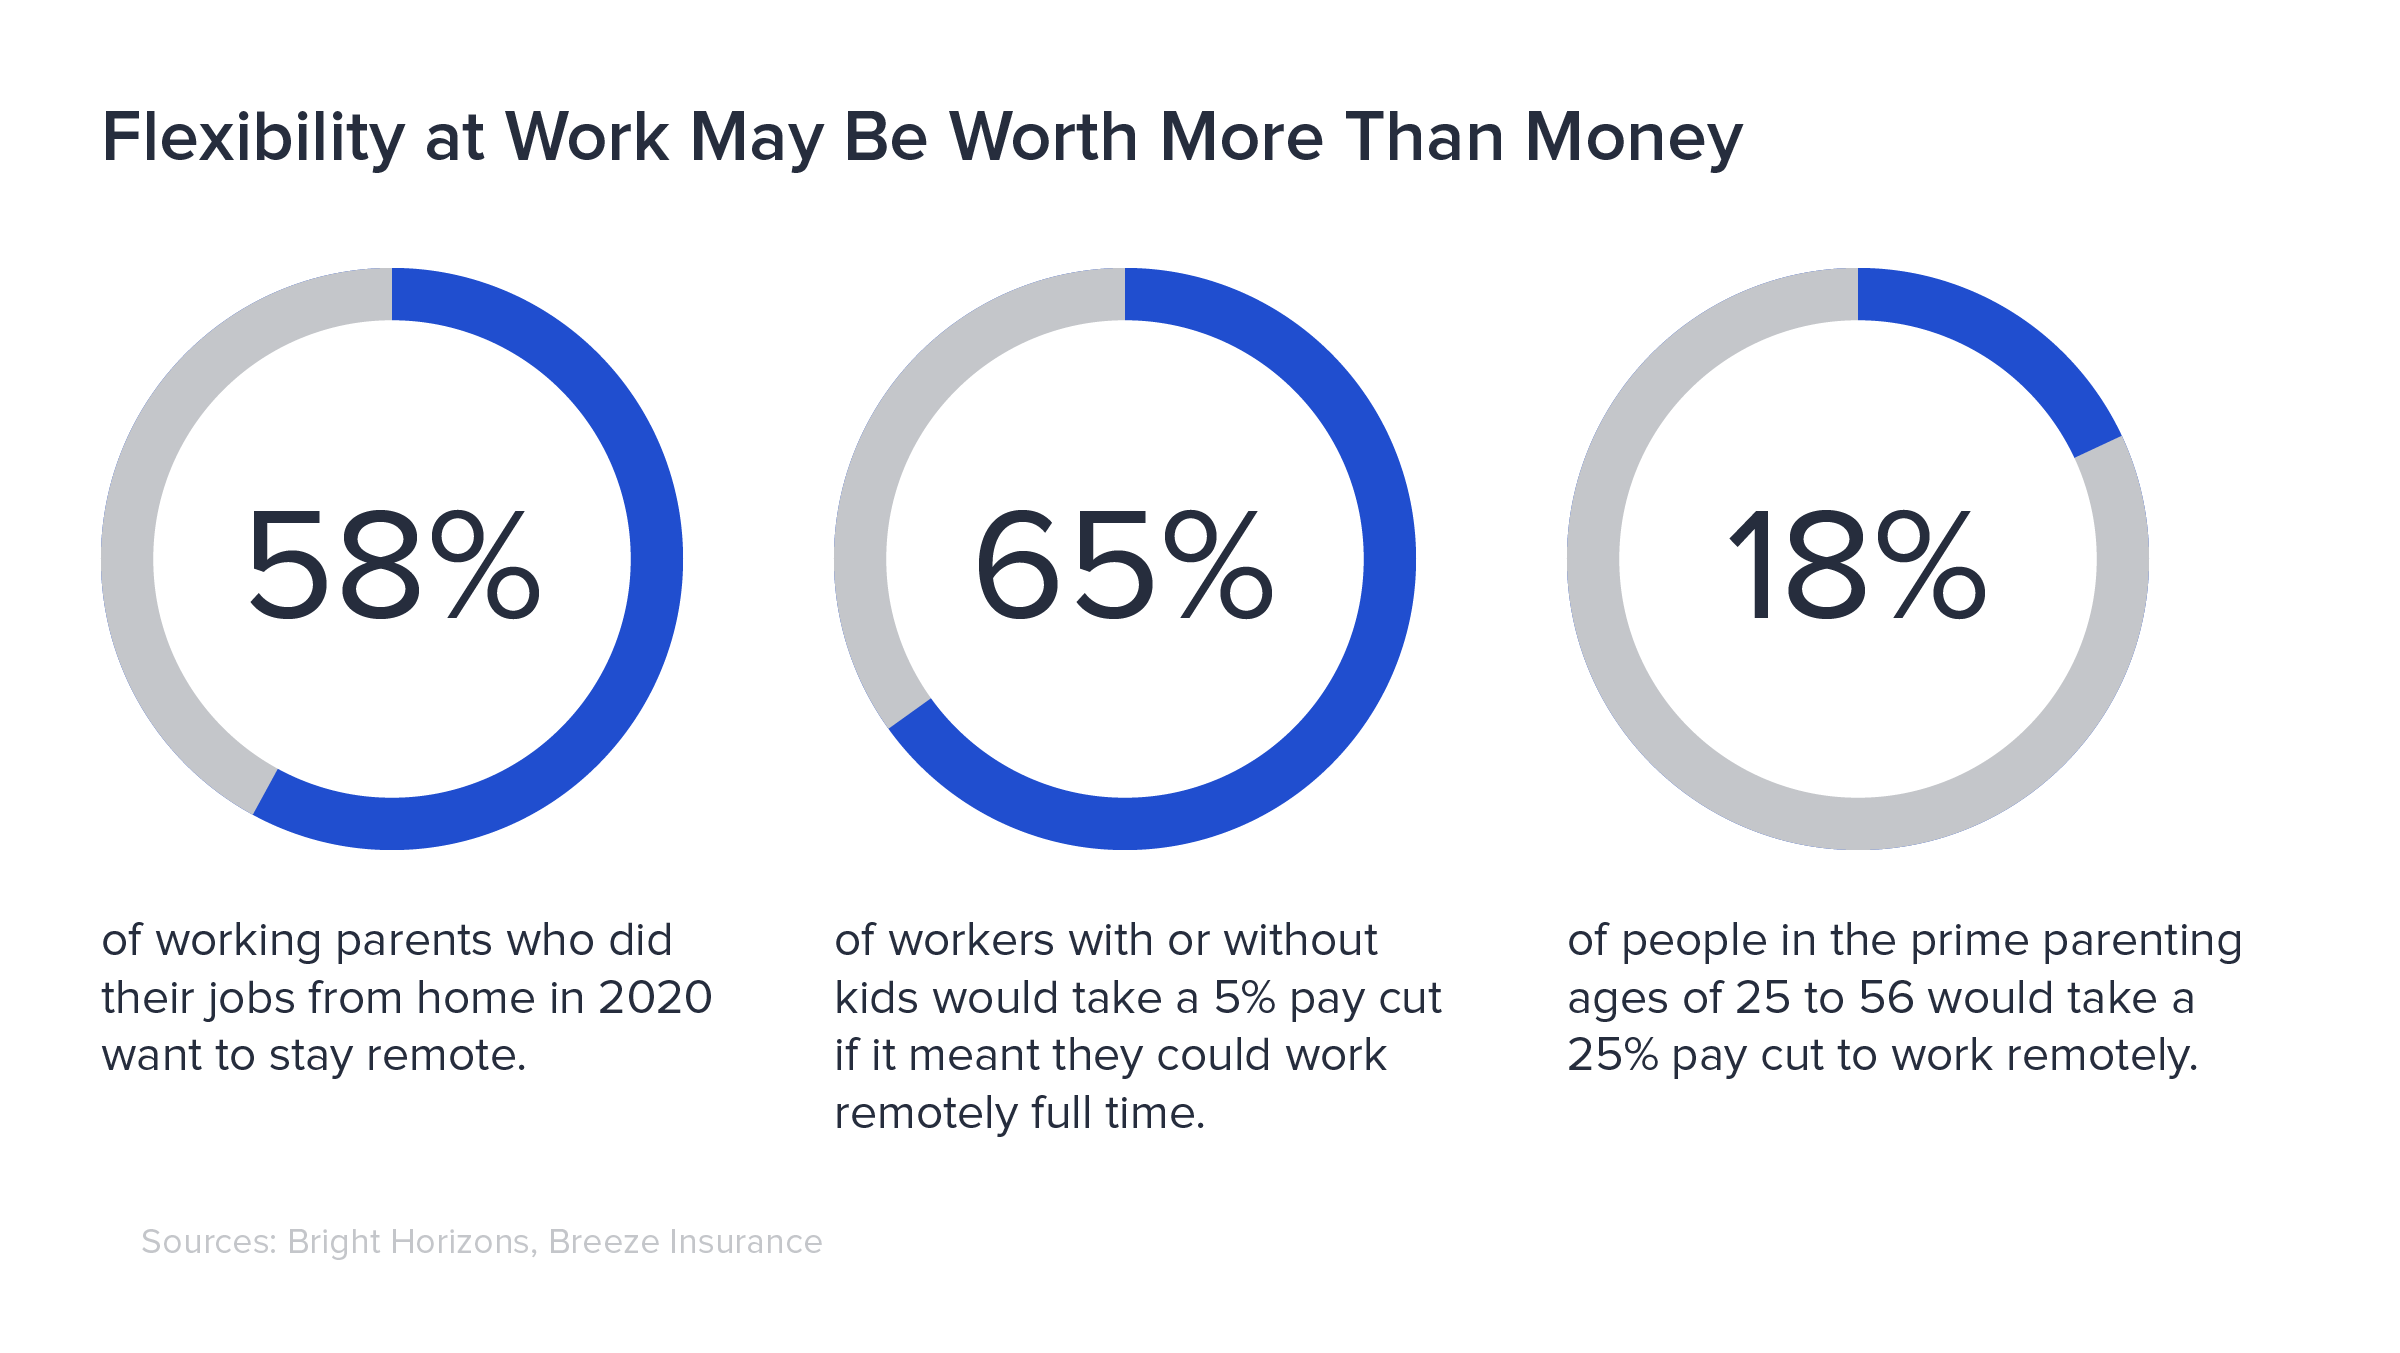 58% of work-from-home parents in 2020 want to stay remote; 65% of workers would take a 5% pay cut to work remotely; 18% of people ages 25 to 56 would lose a quarter of their salaries to work remotely.